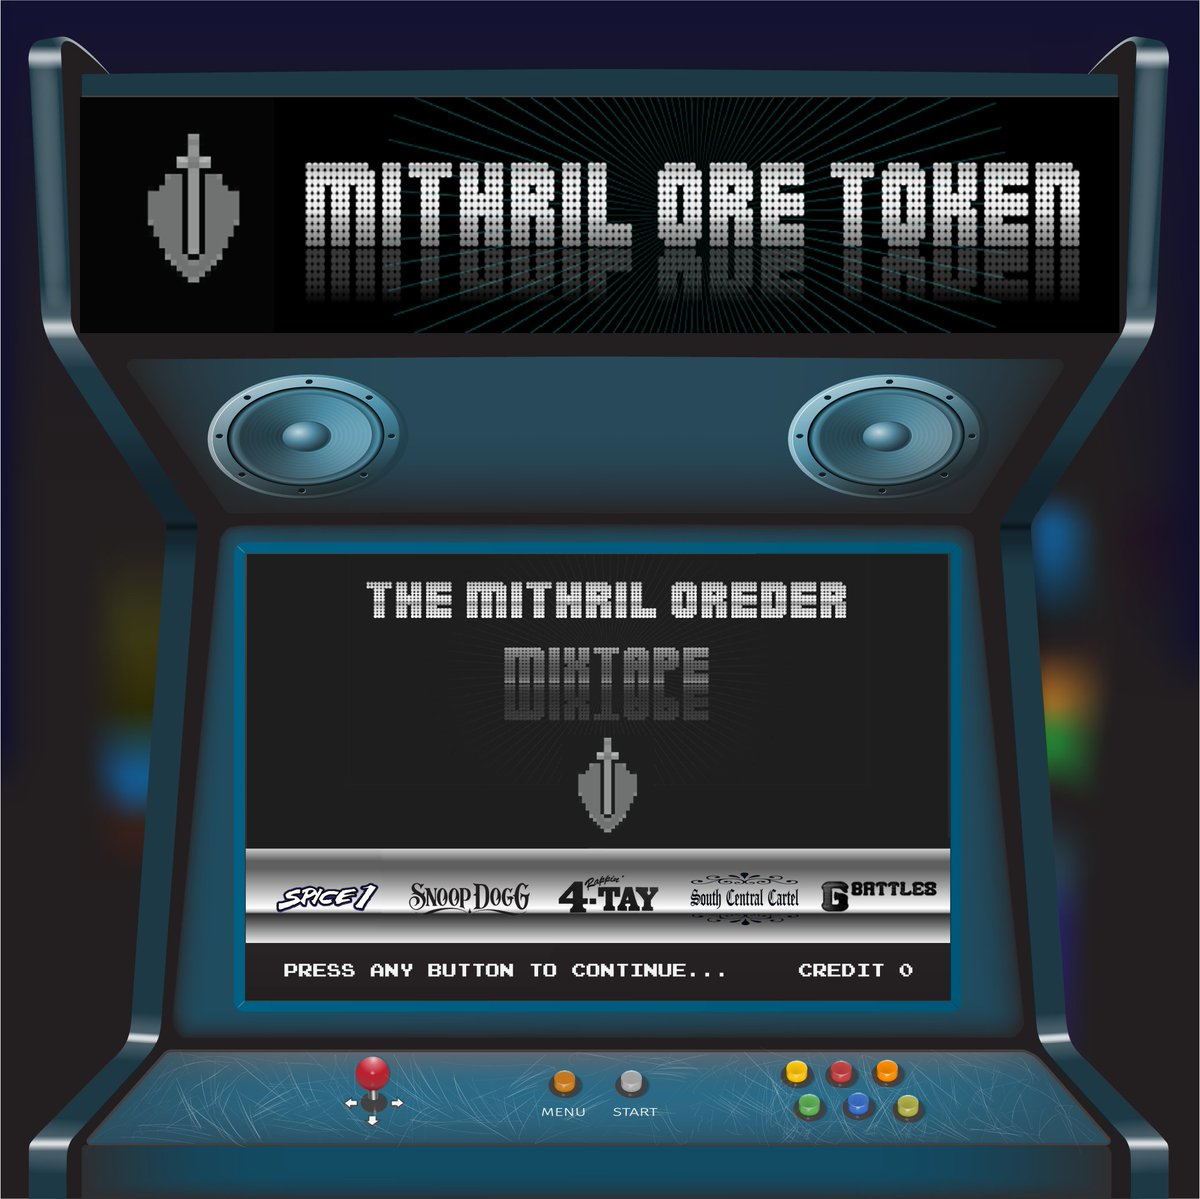 MithrilOre [NOT GIVING AWAY ETH] on Twitter: